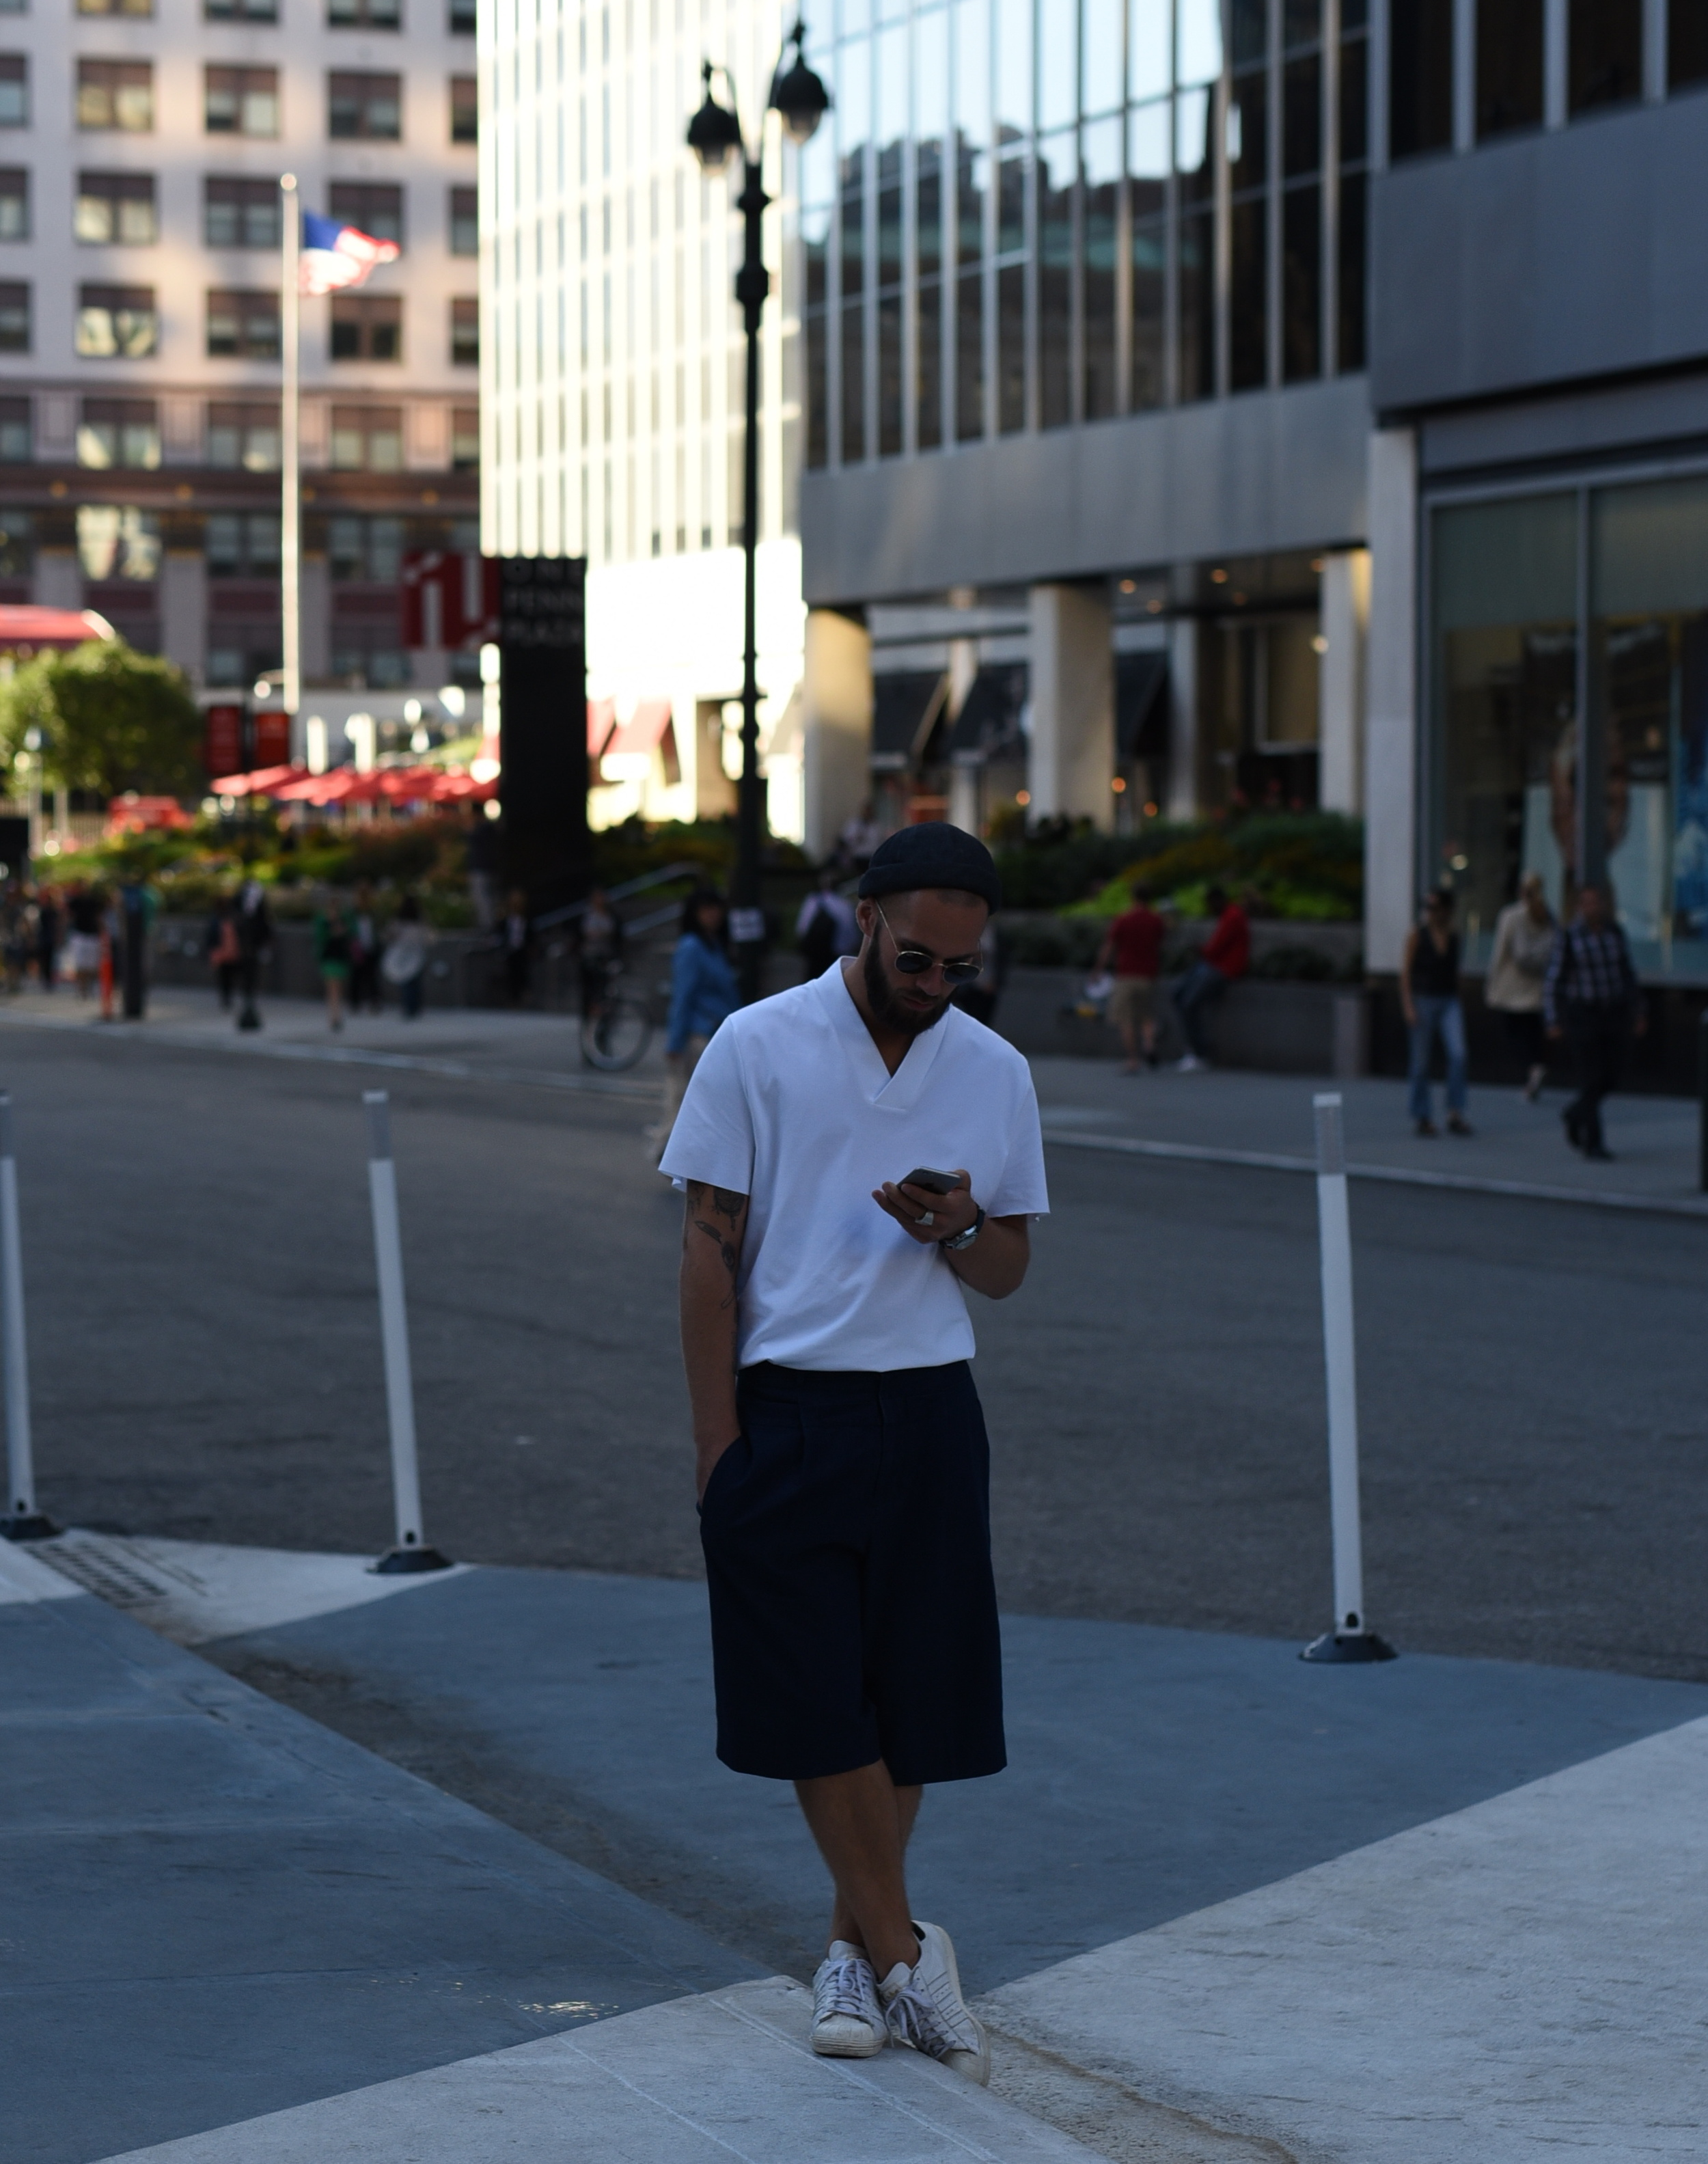 """Another """"normal"""" guy hanging out on the street - but this one is wearing a very fashion-forward outfit featuring culottes."""